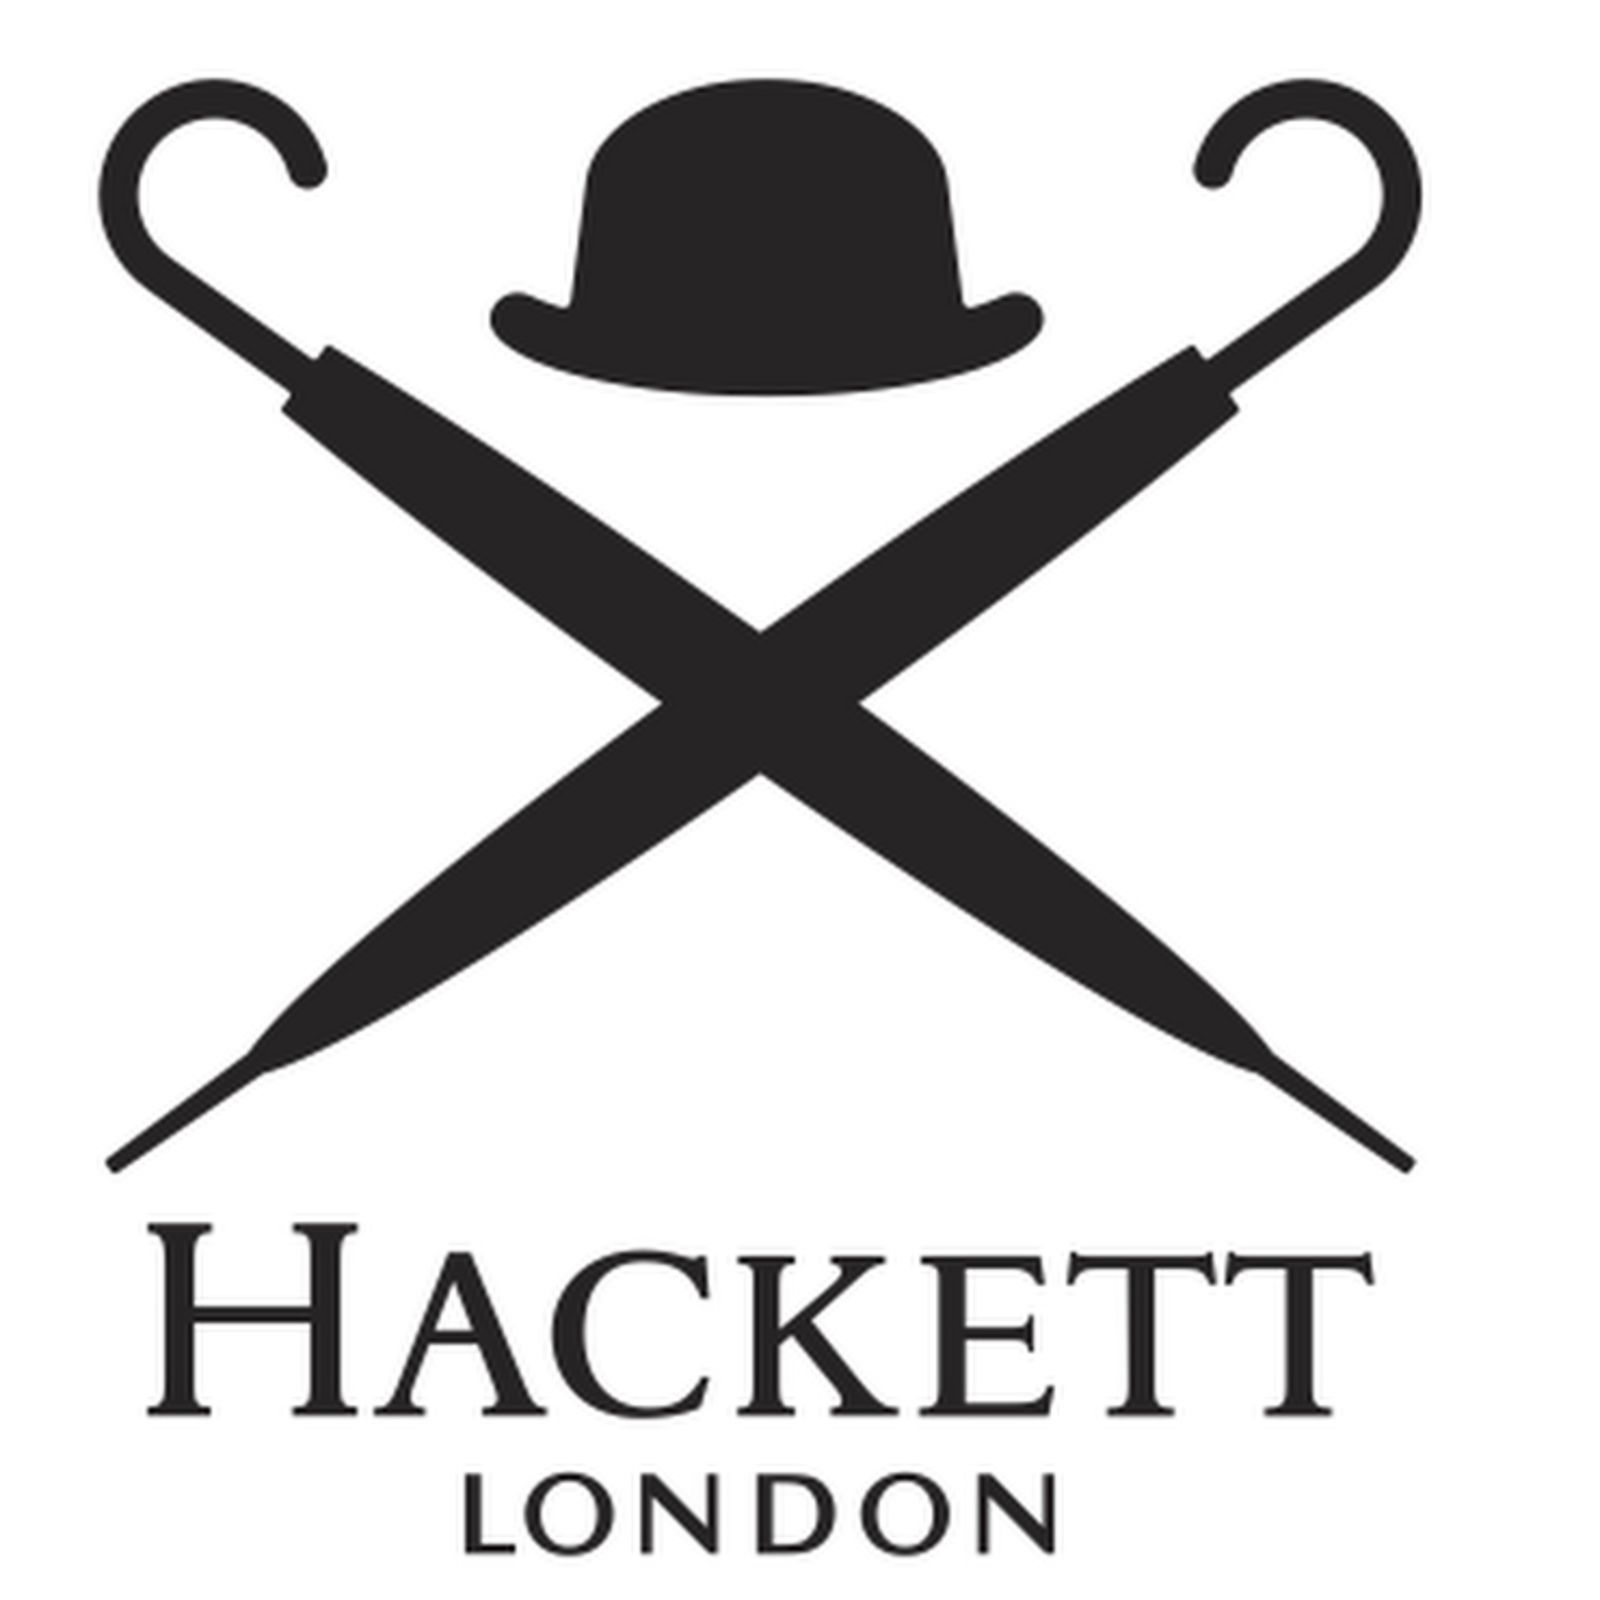 HACKETT LONDON (Image 1)